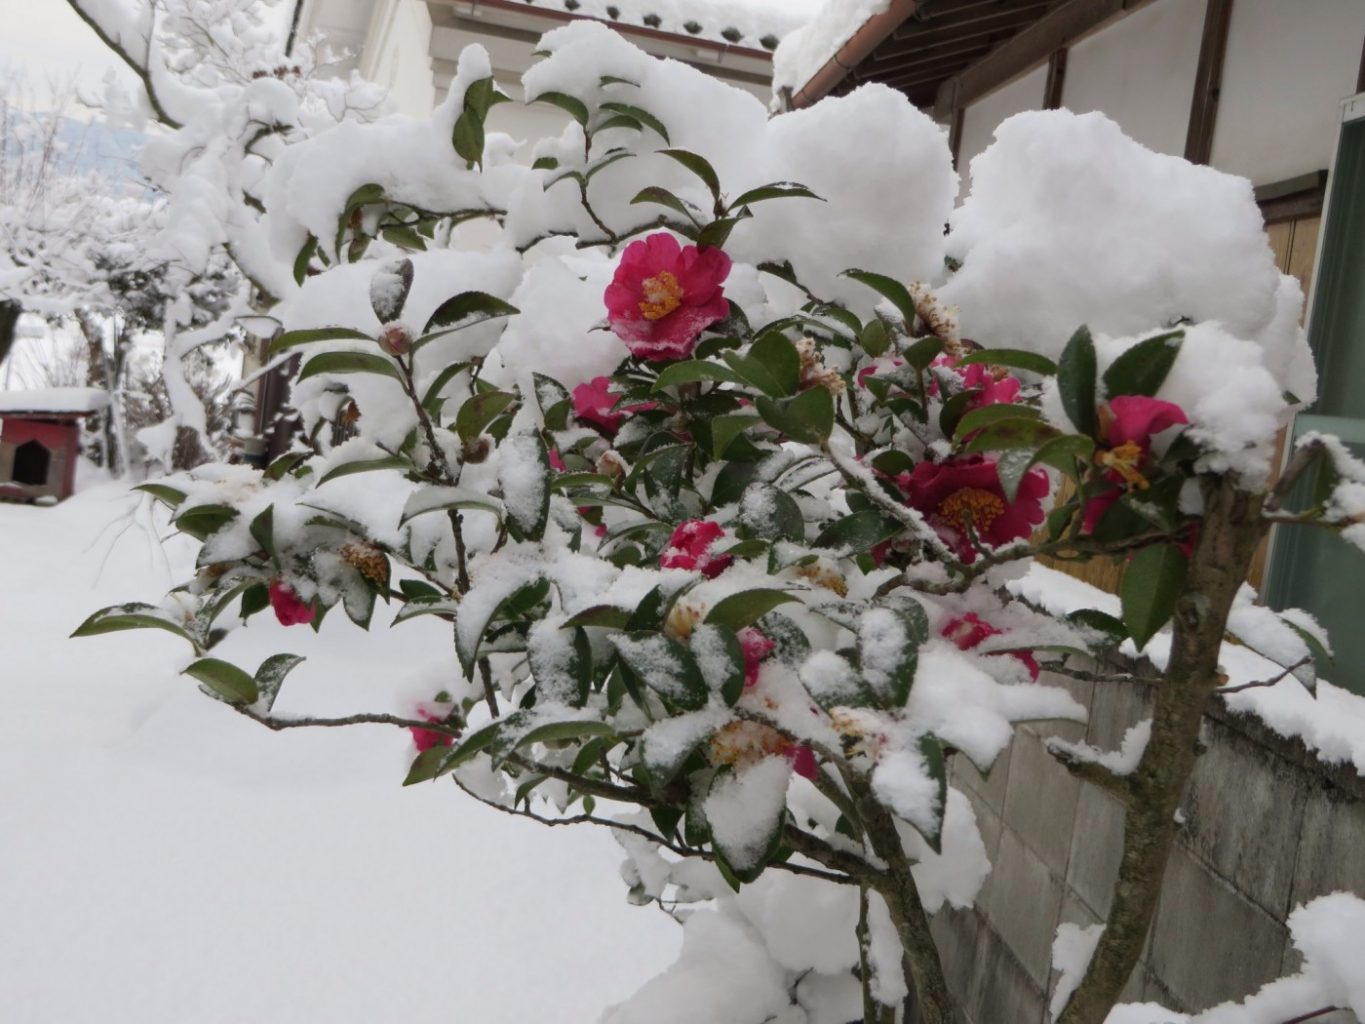 Amazing Pictures of the Snow